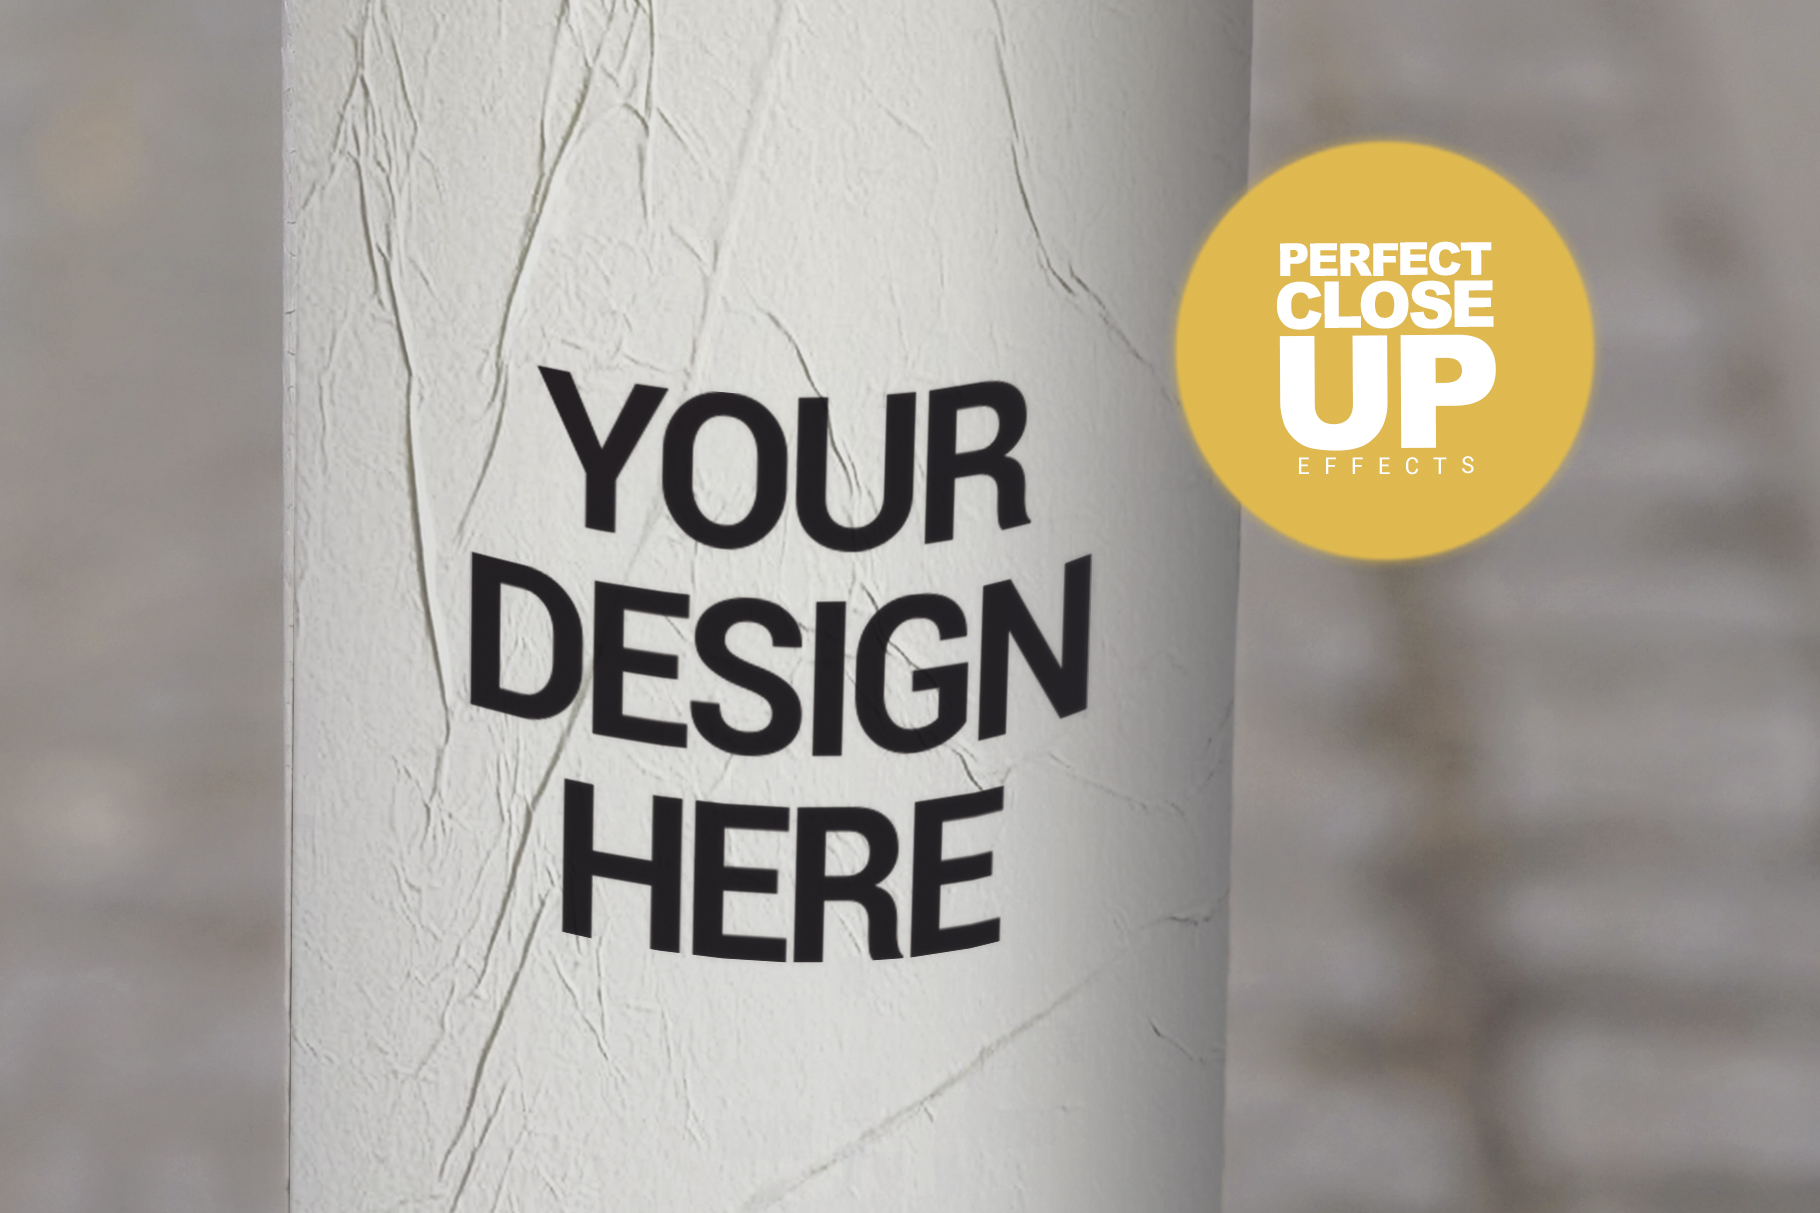 Urban Sign Mockup example image 5